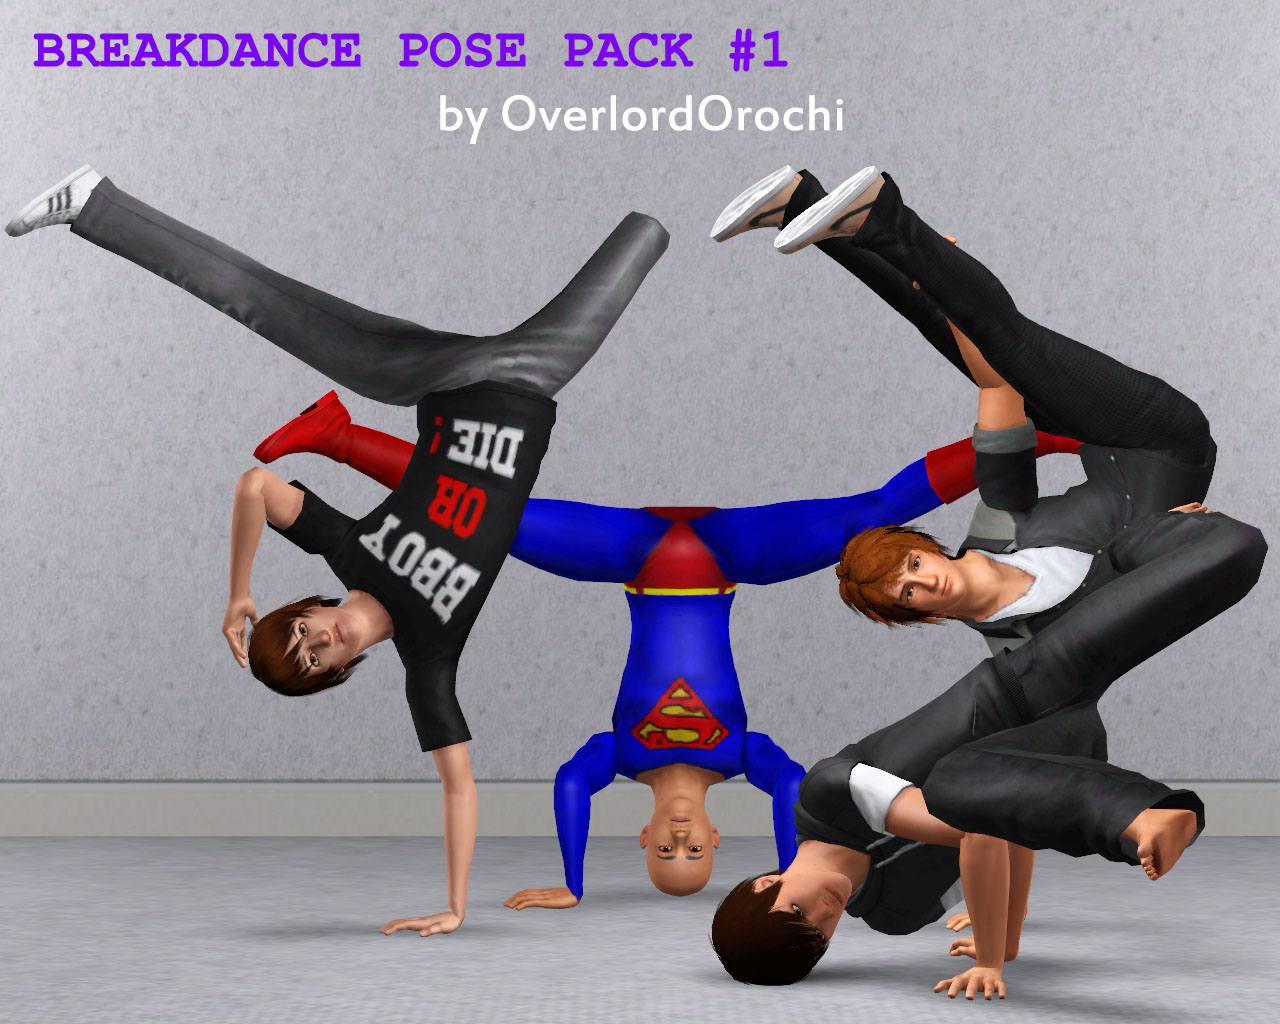 I Can Dance! : Breakdance Poses Pack #1 by overlordorochi